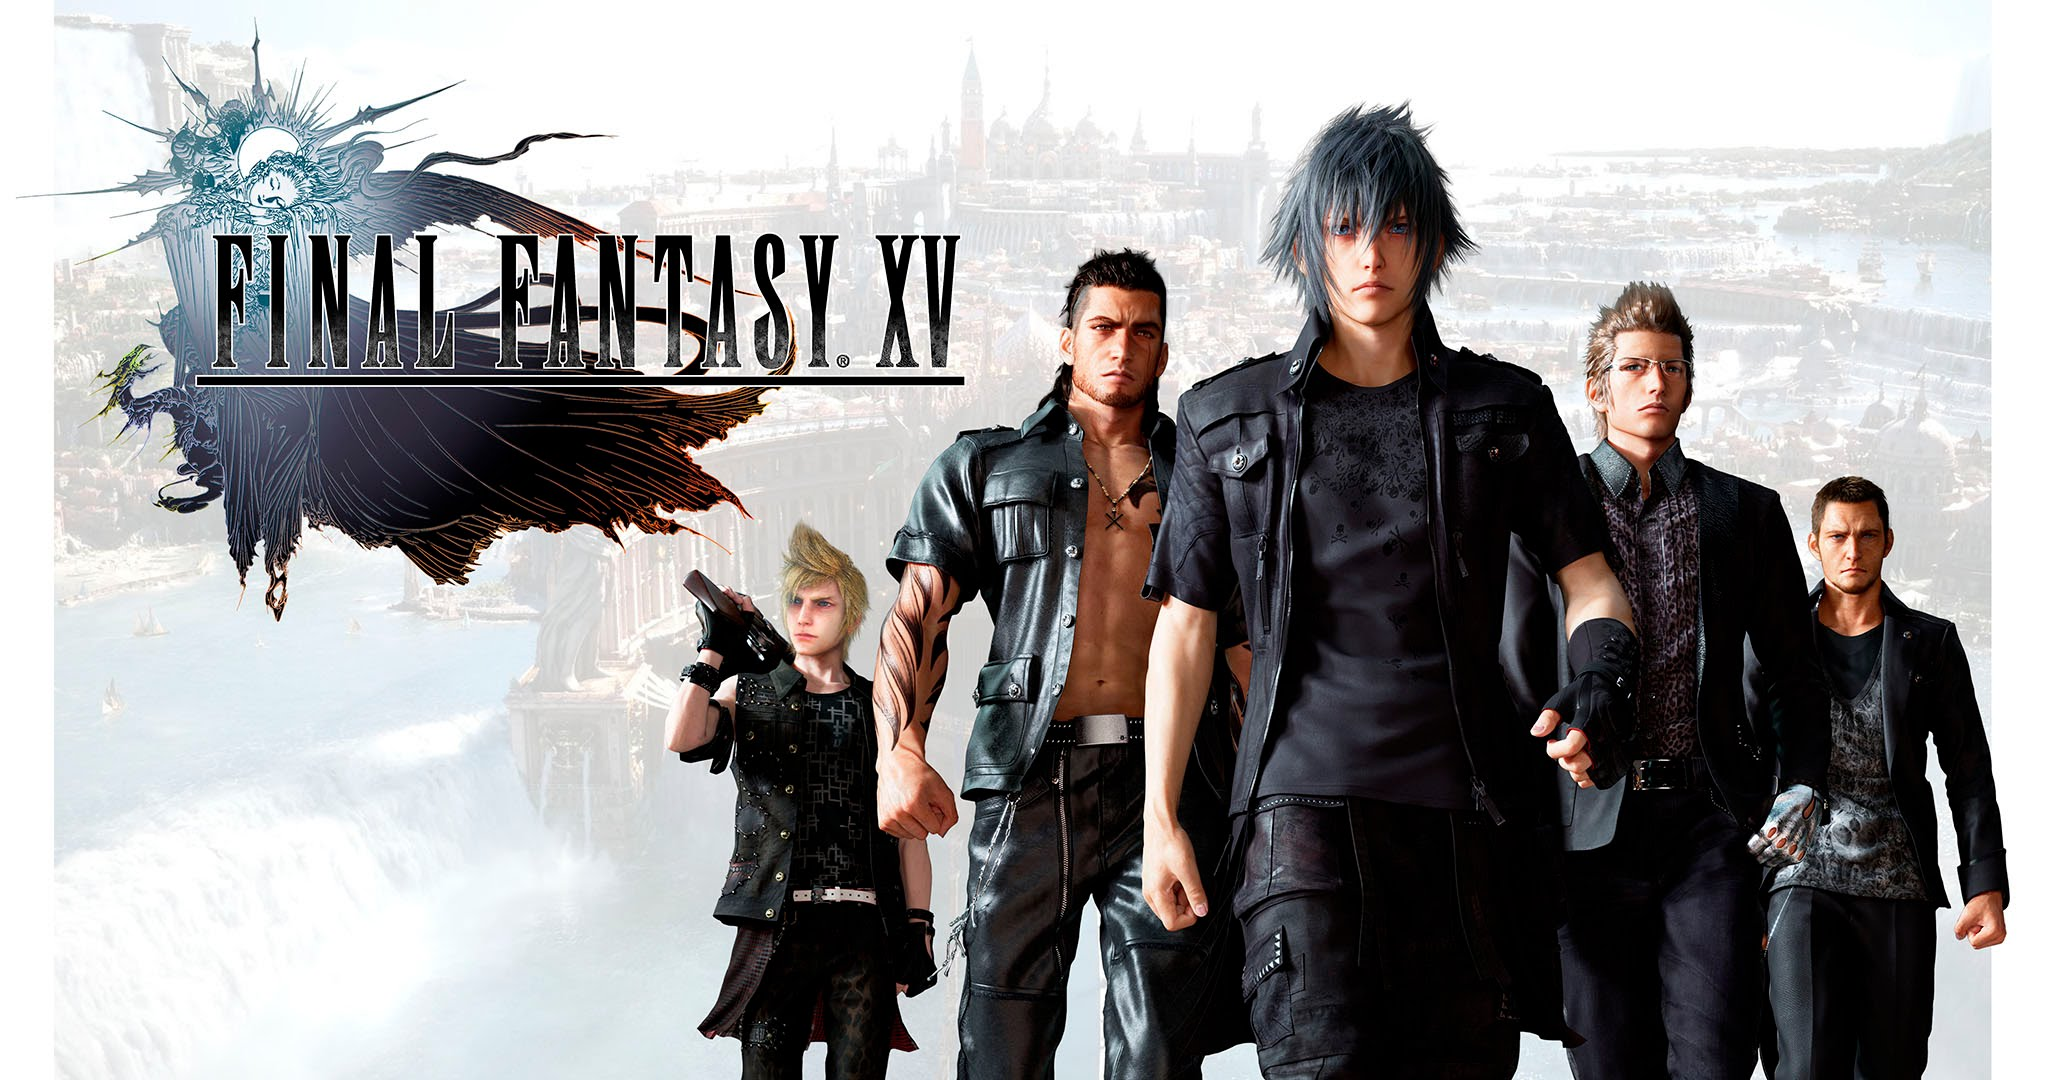 Final-Fantasy-XV-Wallpaper-Image